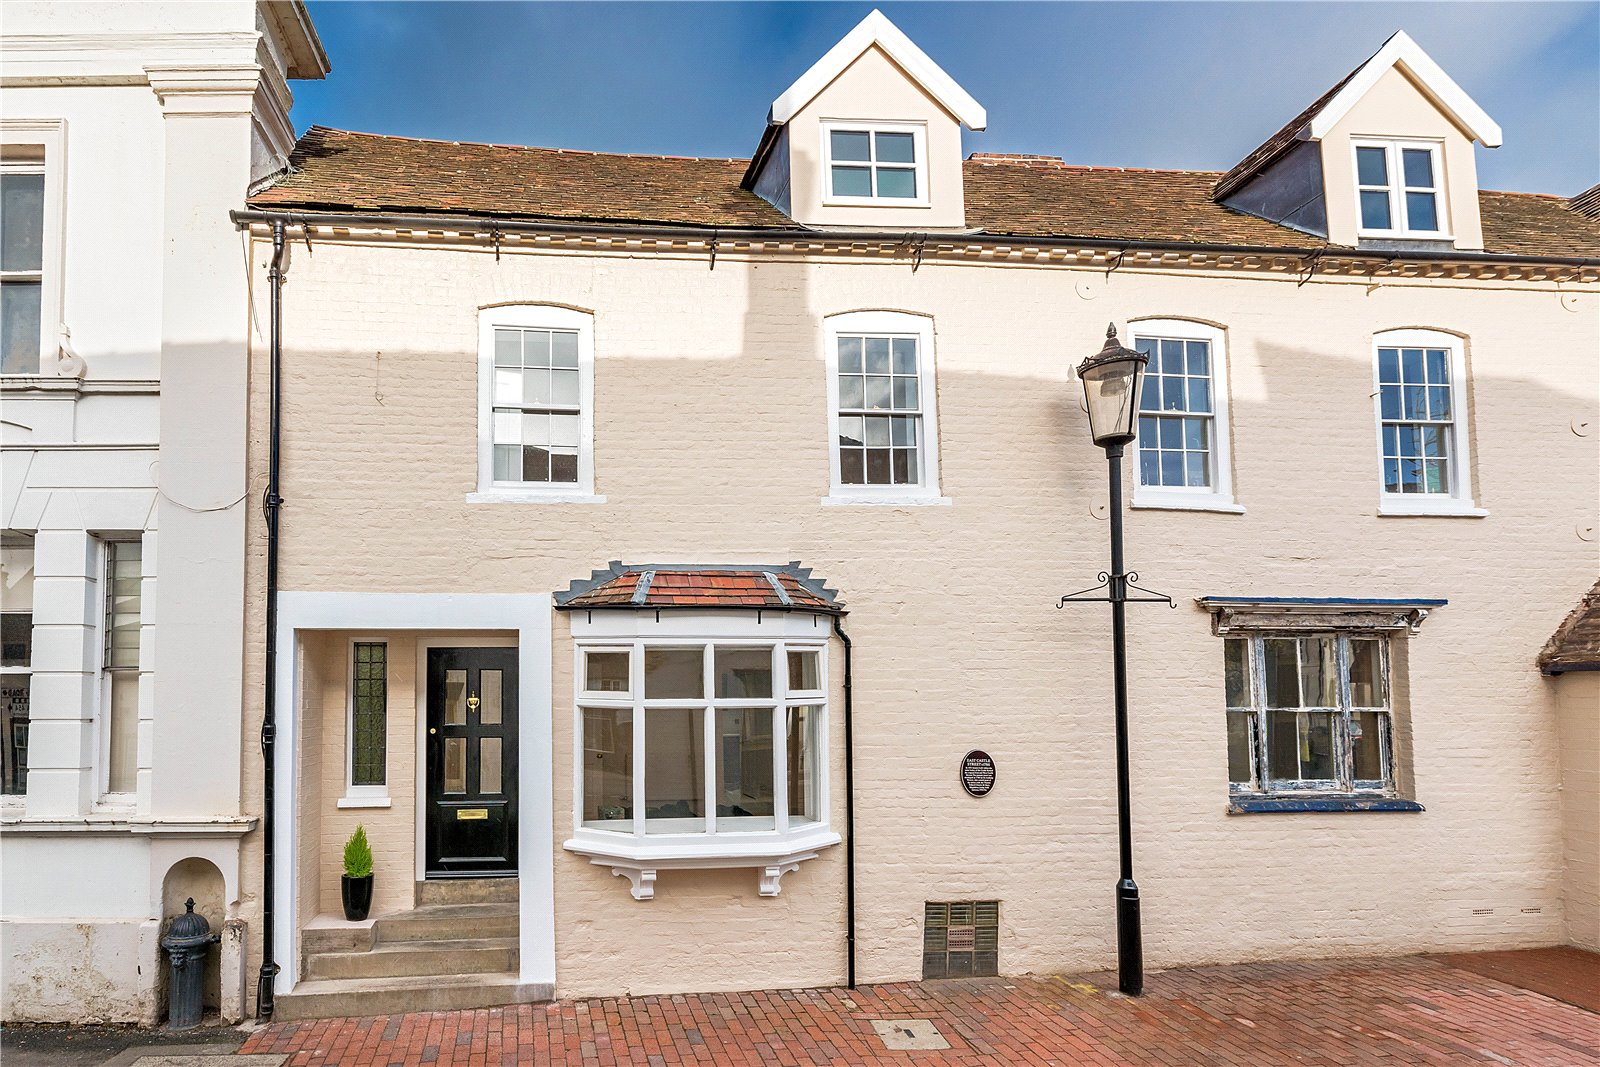 3 Bedrooms Terraced House for sale in Weaver's, 32 East Castle Street, Bridgnorth, Shropshire, WV16